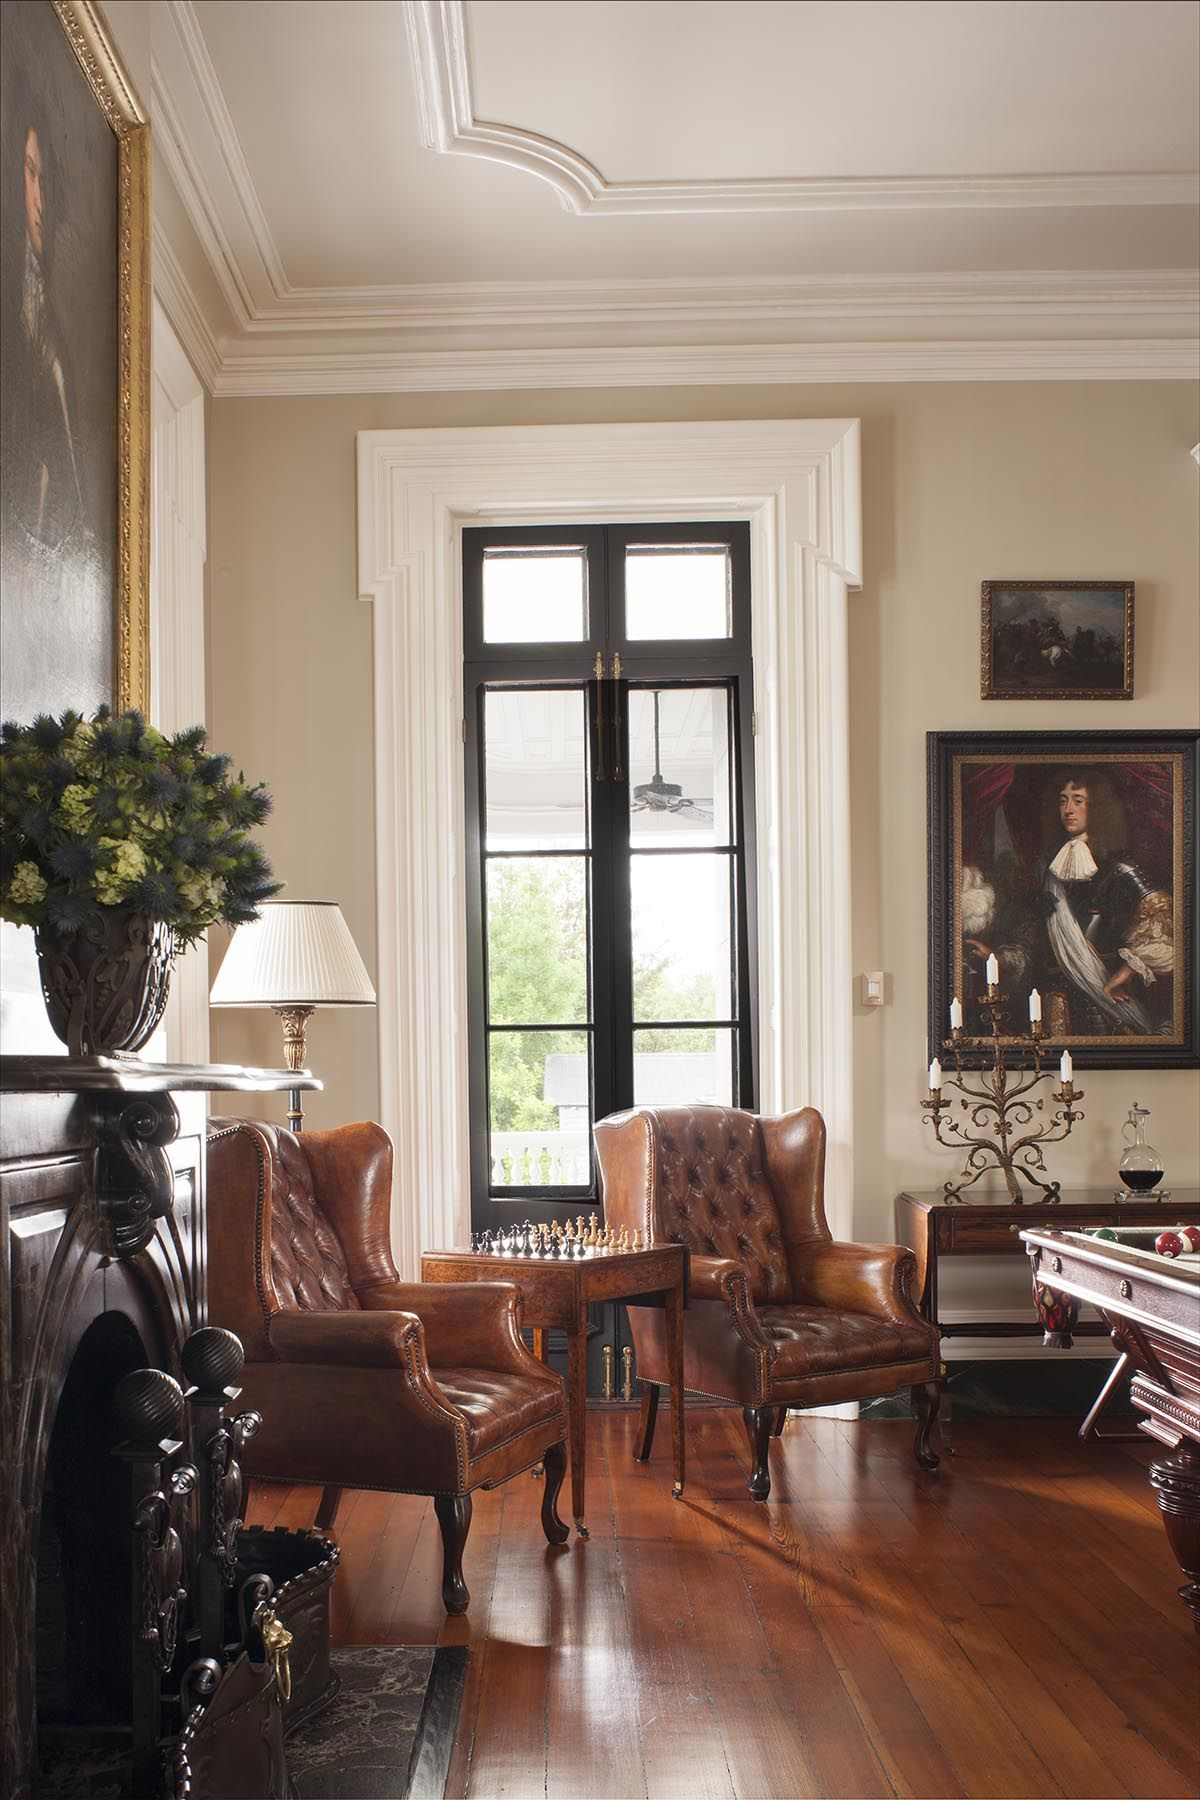 Tufted Leather Chairs In Traditional Charleston Game Room. SLC INTERIORS   Interior  Design   Charleston, SC